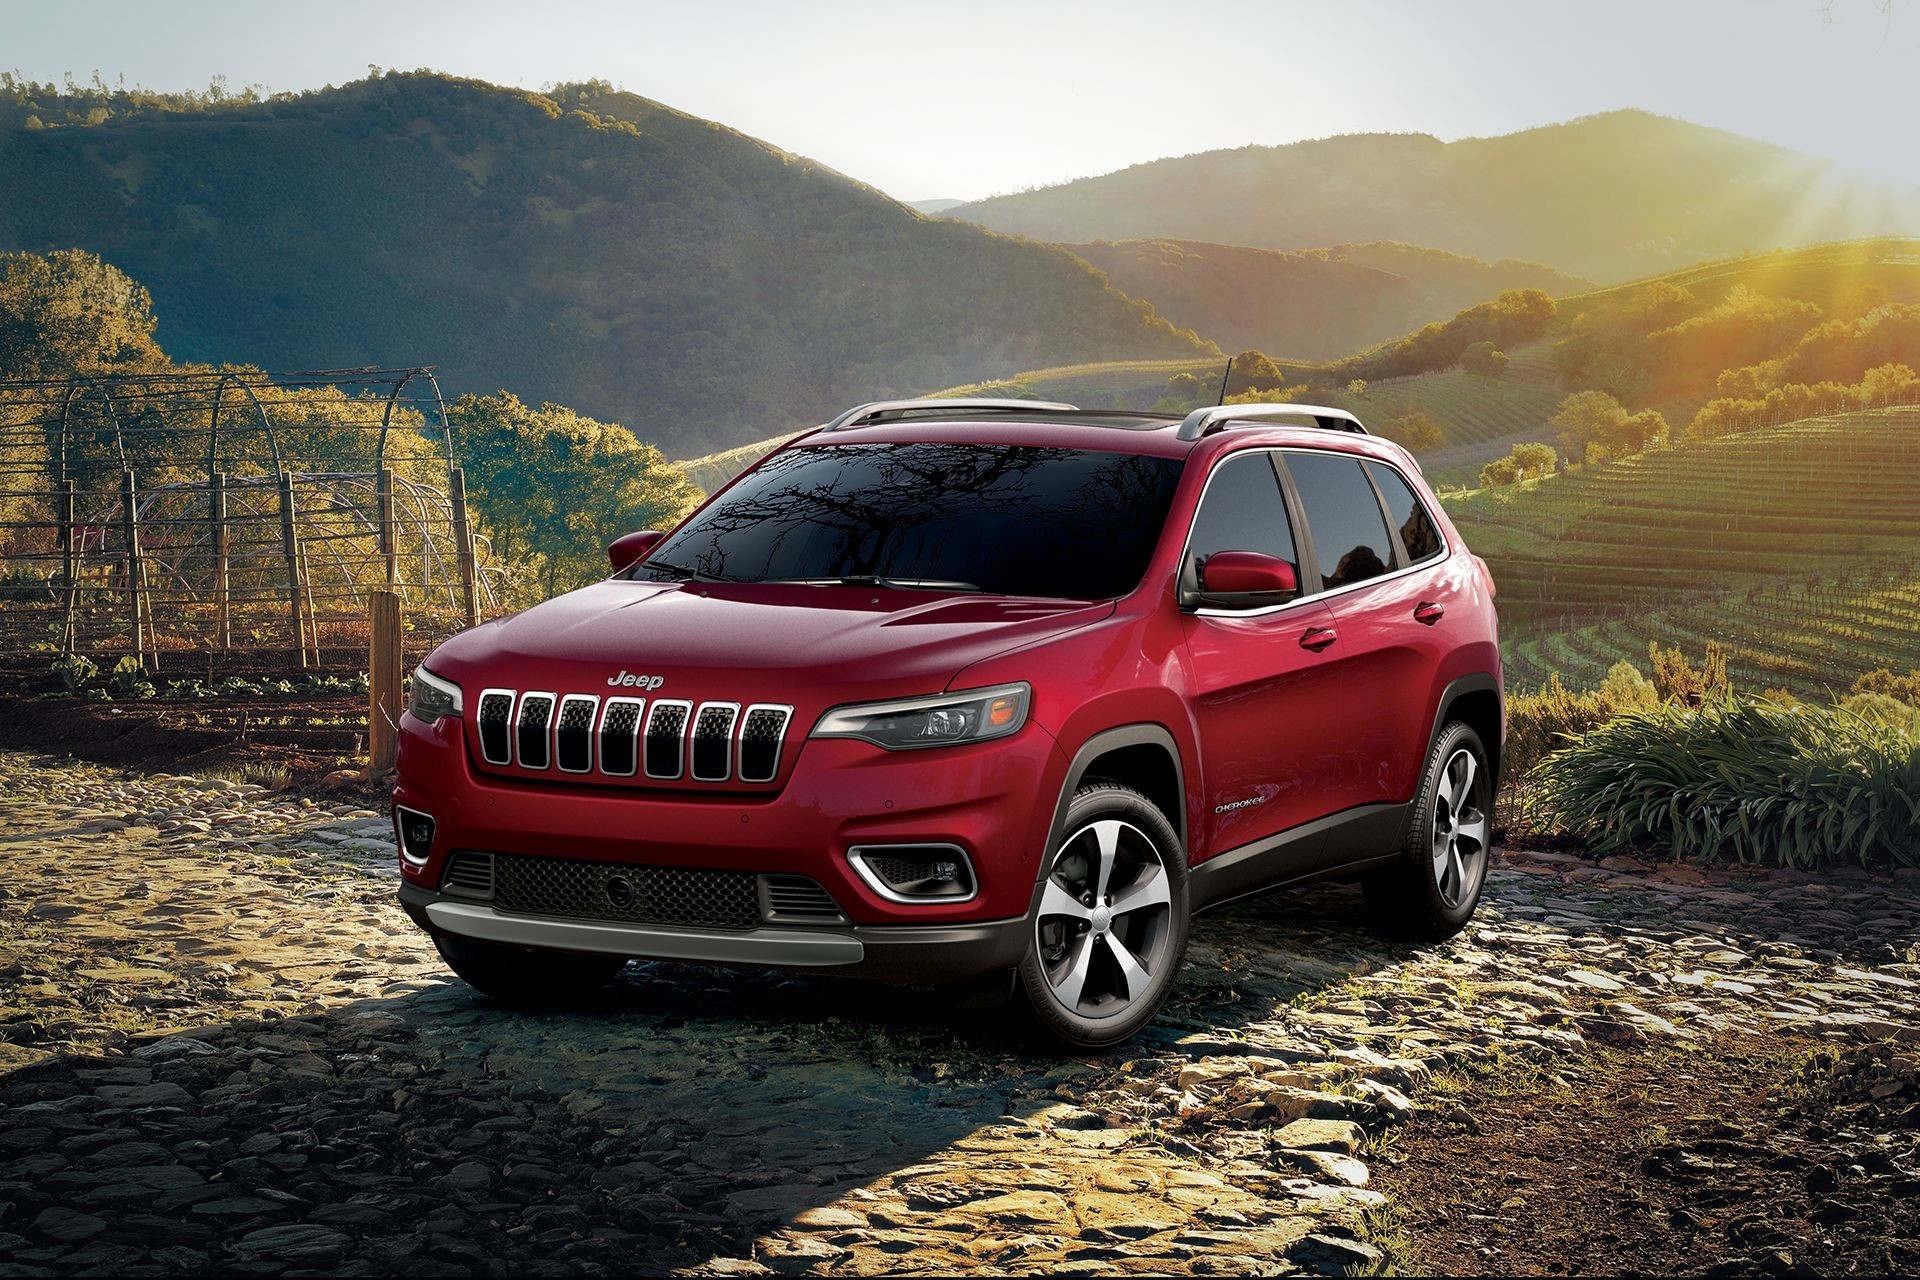 Jeep Cherokee 2019 red 4x4 outdoors